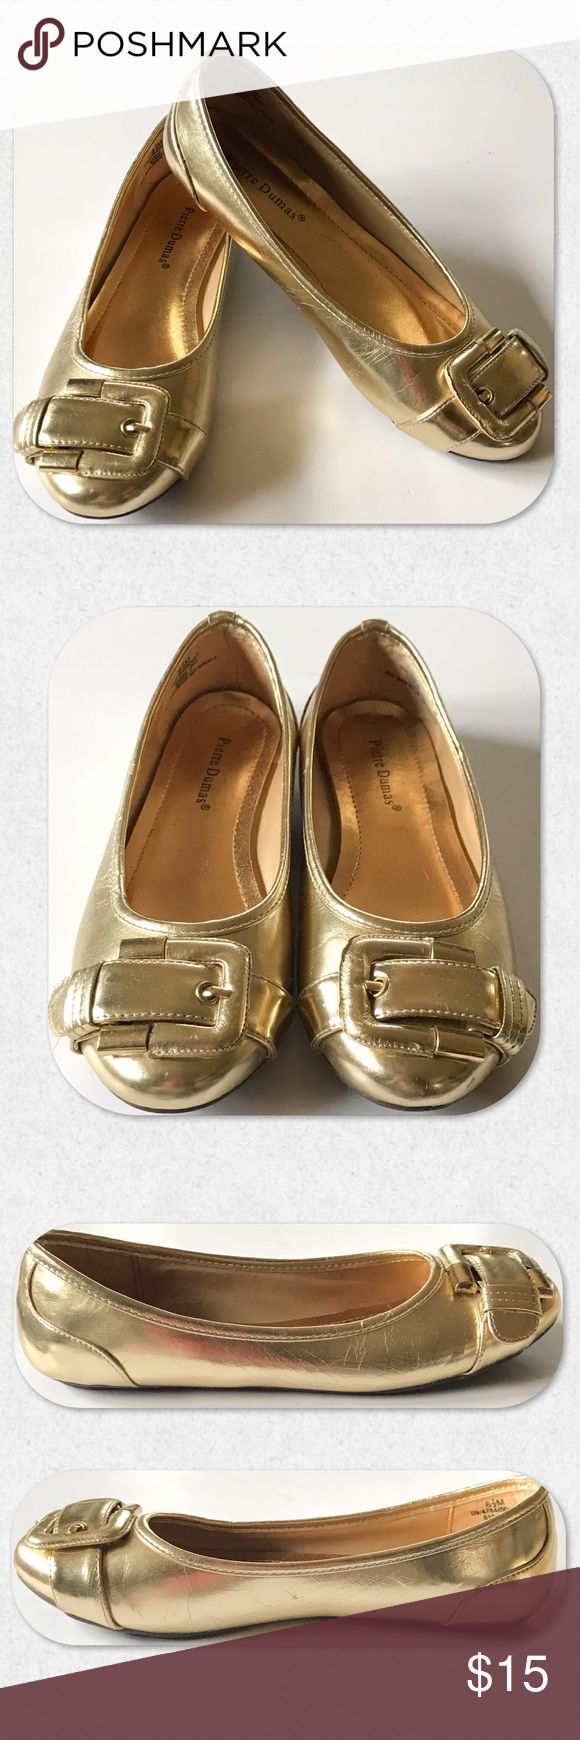 "Pierre Dumas ""Eden"" Metallic Gold Ballet Flats Pierre Dumas Eden metallic gold ballet flats with a decorative buckle at top of foot. Rubber sole. Very flexible and comfortable. Size 6 1/2. Worn one time. Virtually brand new! Still has stickers on bottoms. Pierre Dumas Shoes Flats & Loafers"